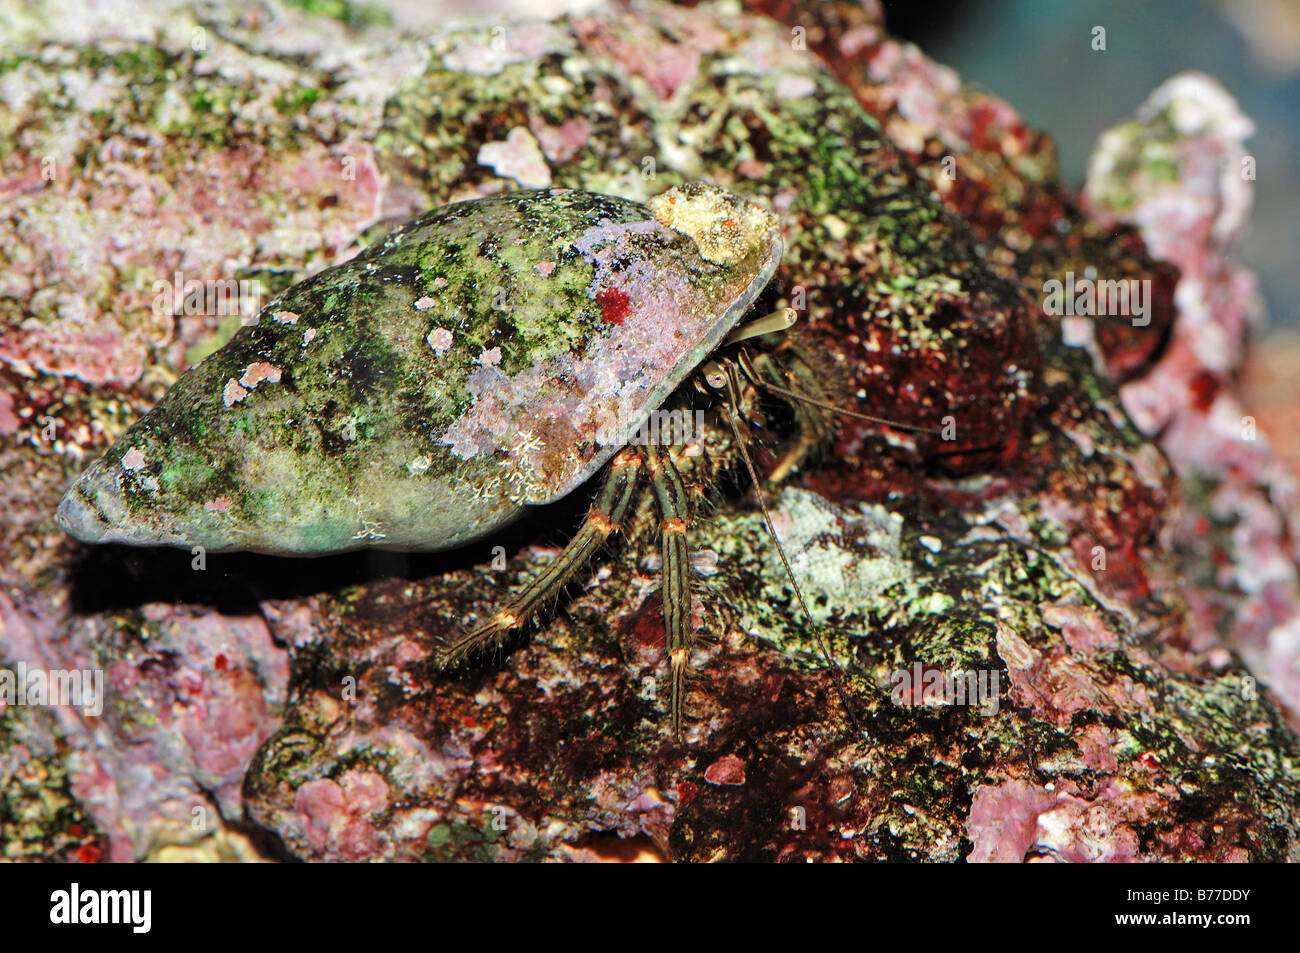 Left-handed Hermit Crab (Diogenidae spec.) - Stock Image